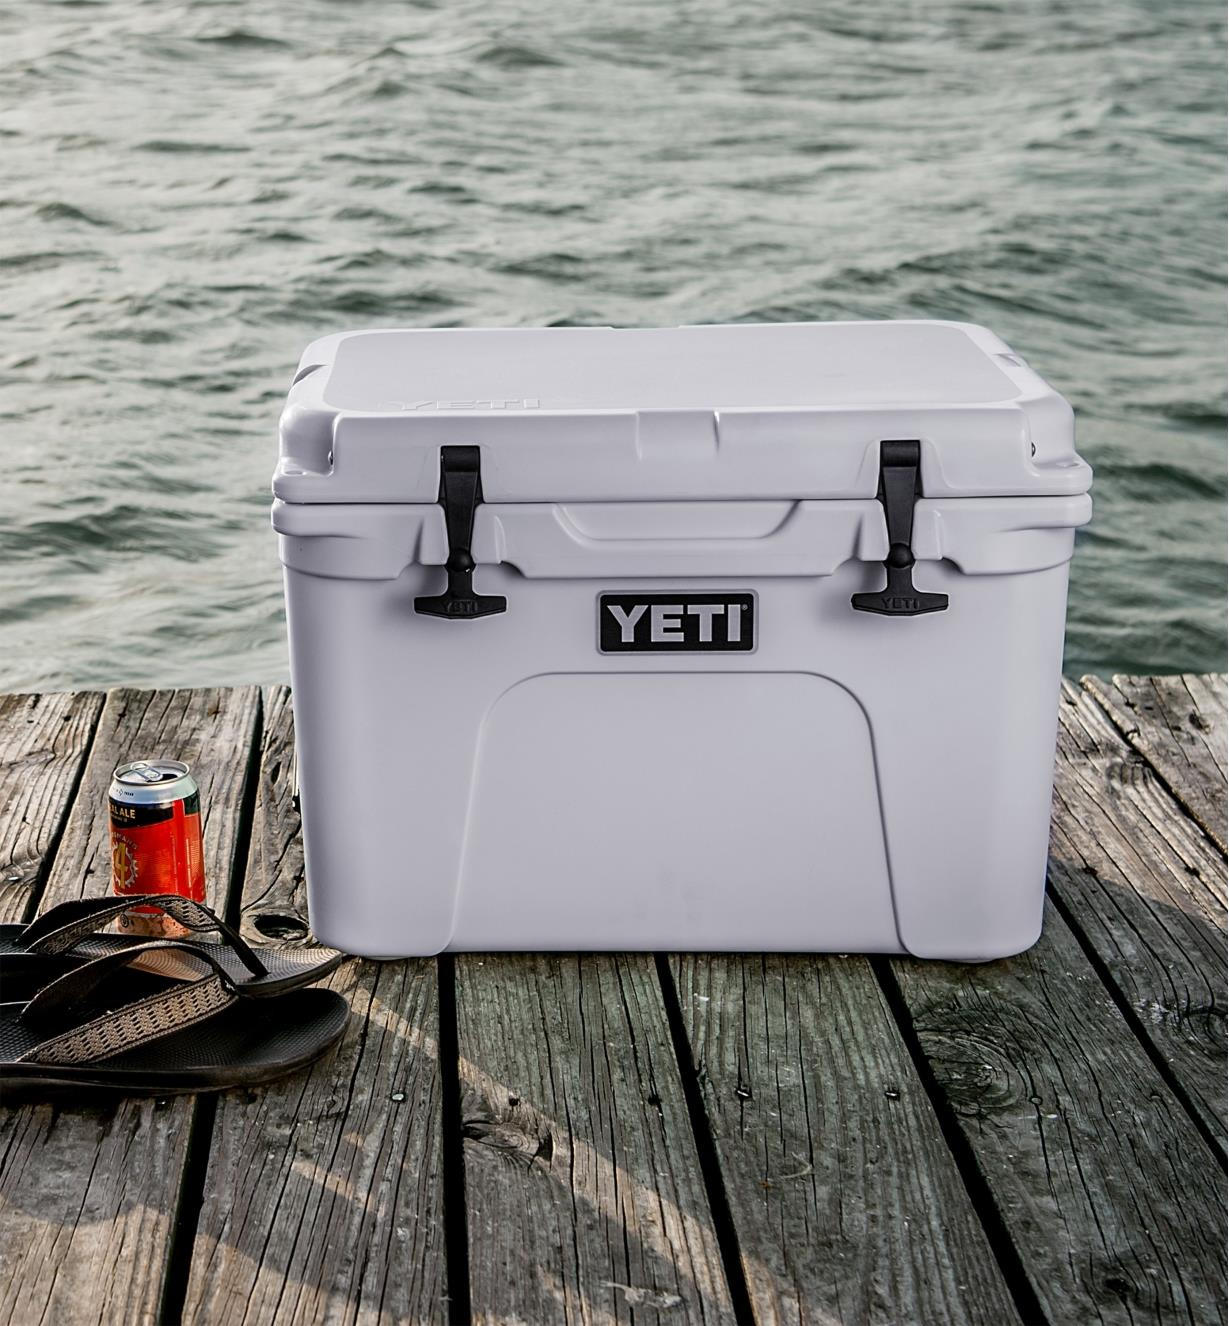 Yeti Tundra Hard-Sided 35 Cooler place on a dock